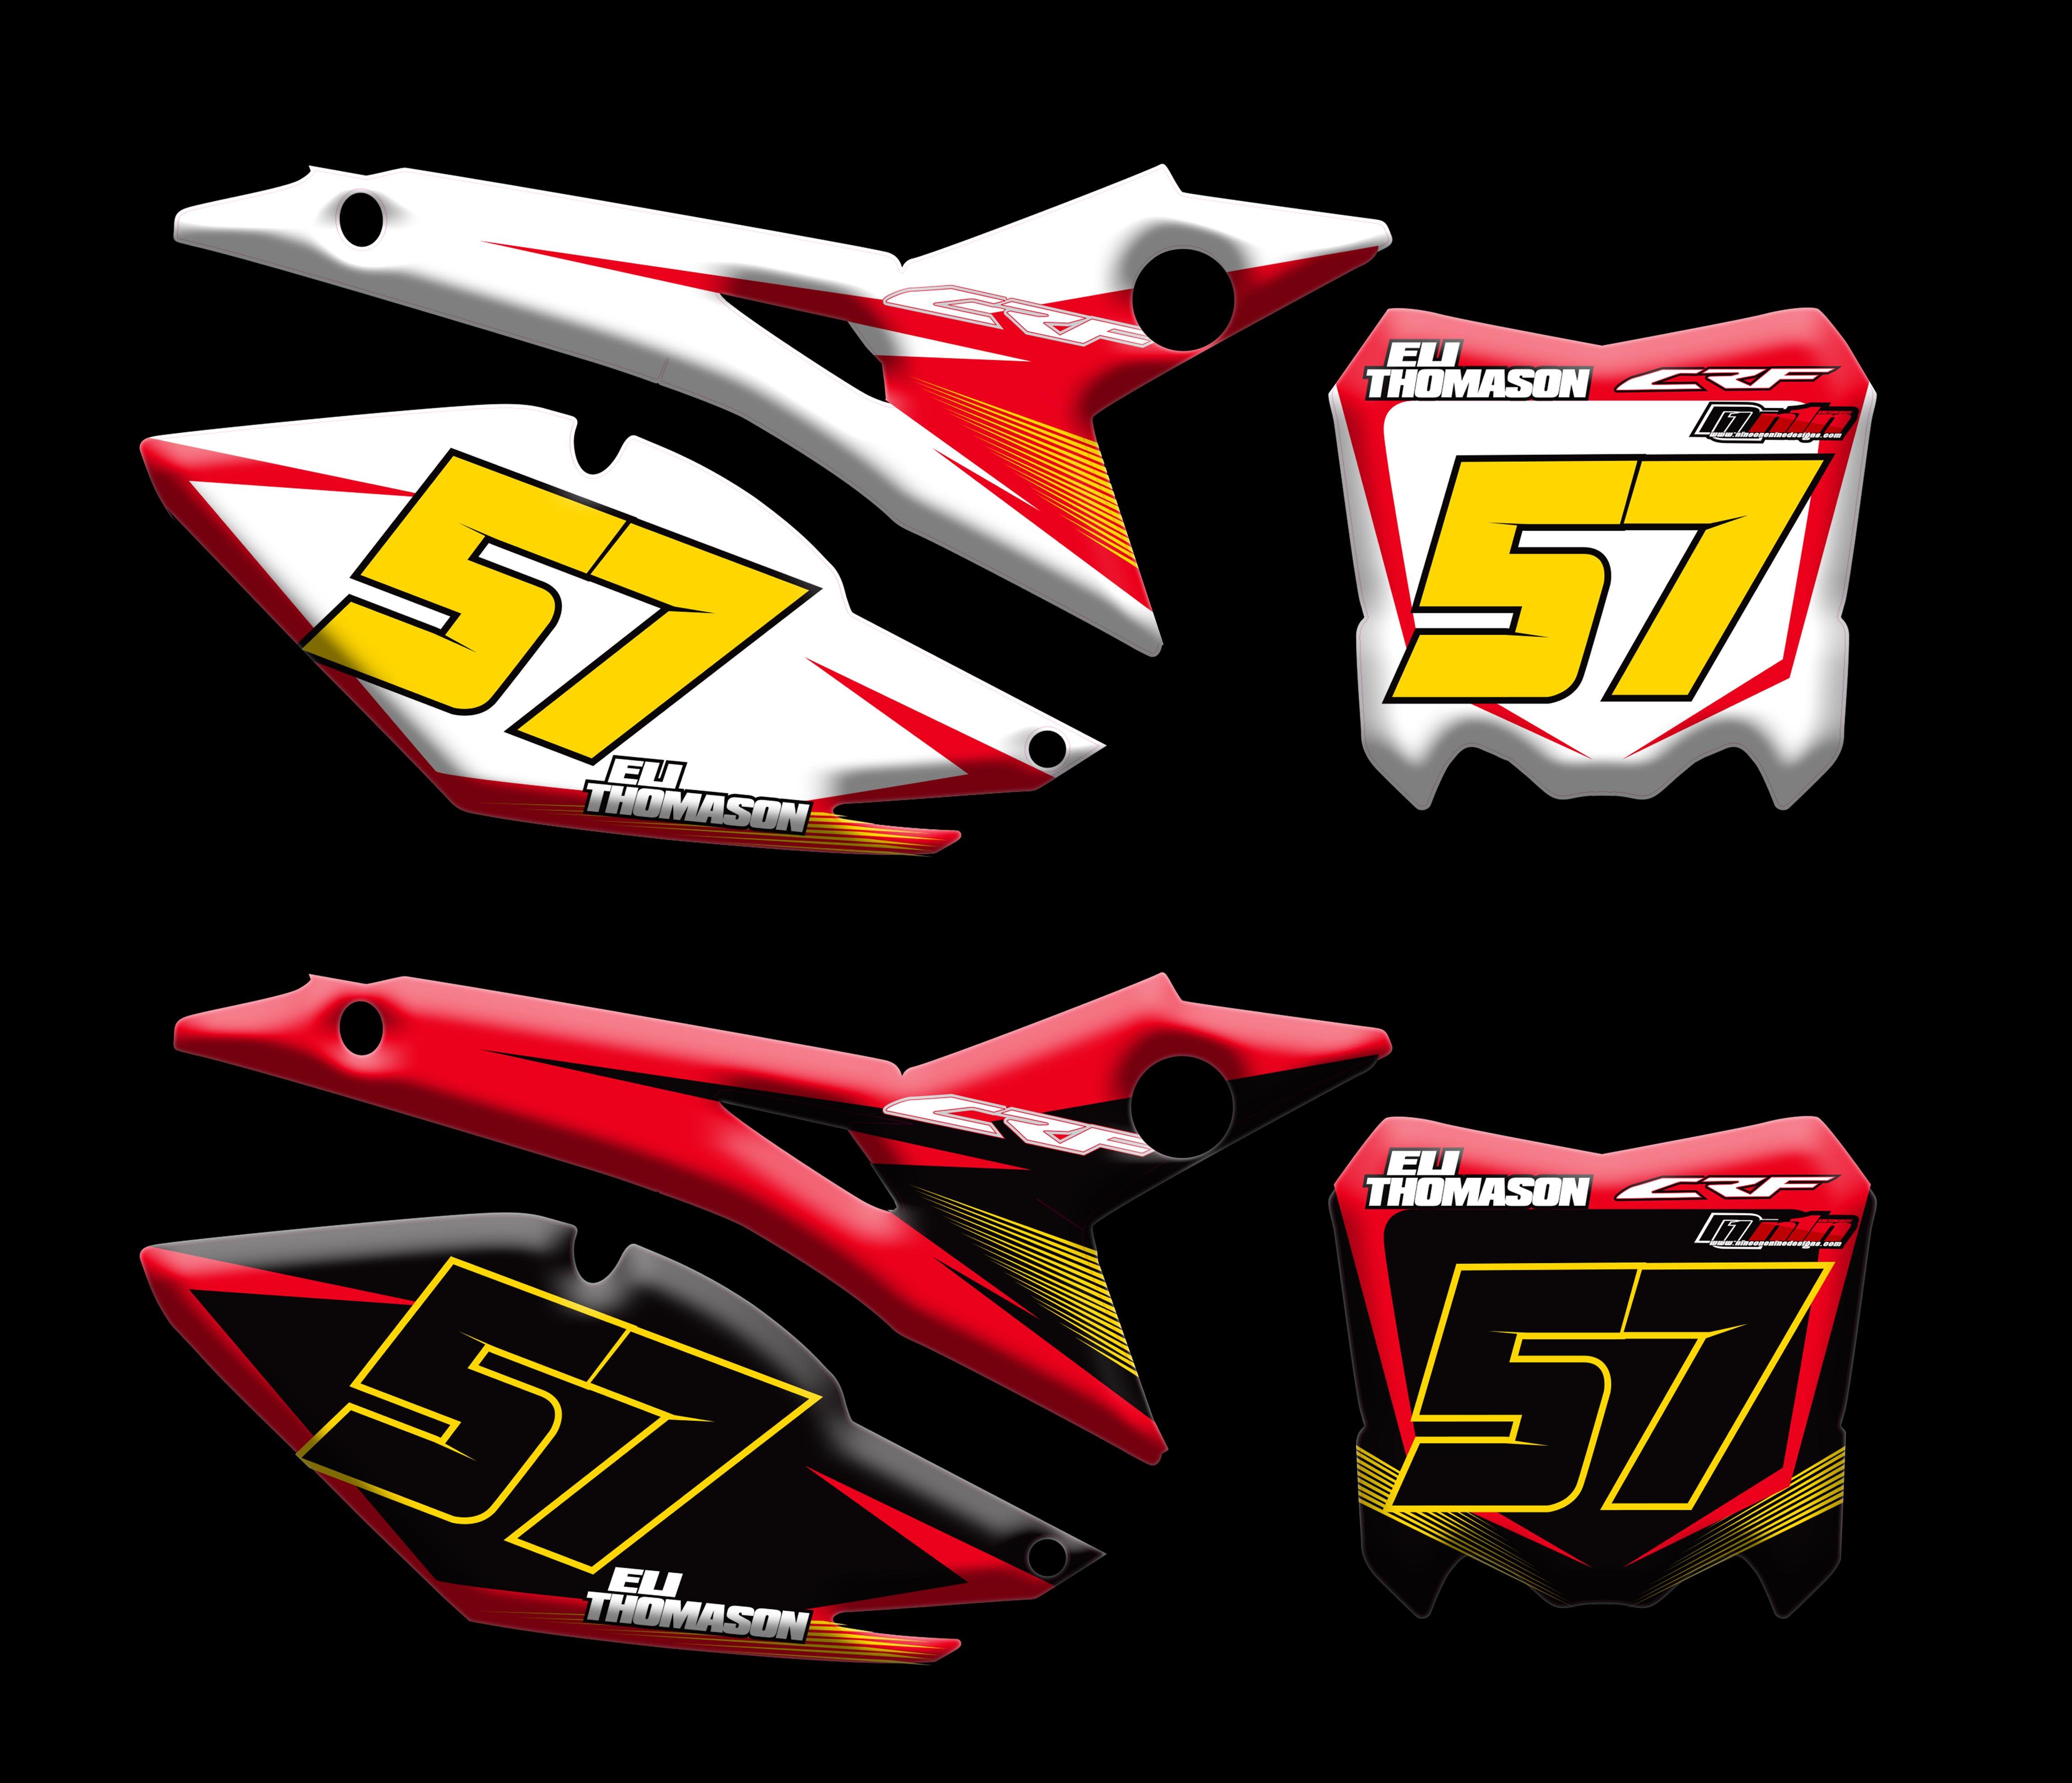 30  Beauty Sticker Design For Motorcycle for Honda Sticker Design For Motorcycle  75tgx